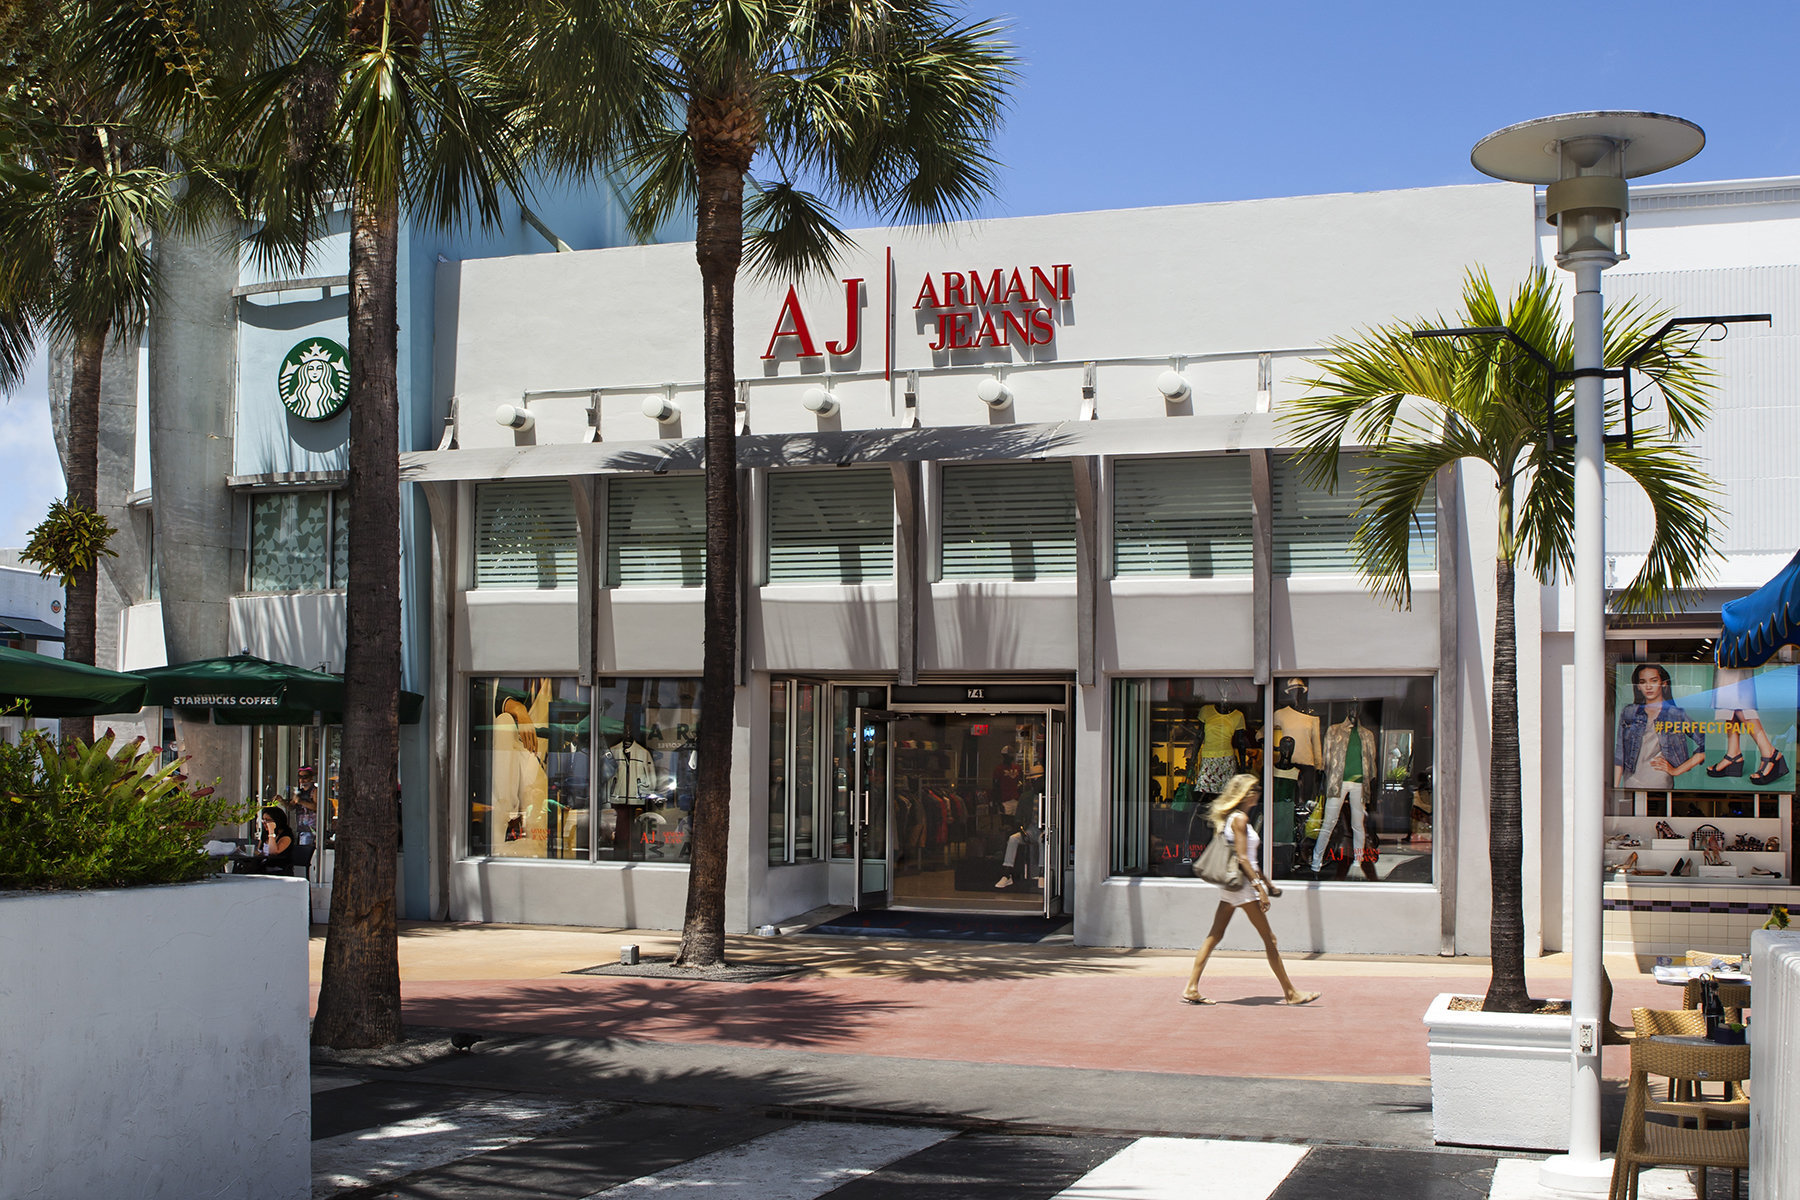 Armani Jeans on Lincoln Road for Terranova